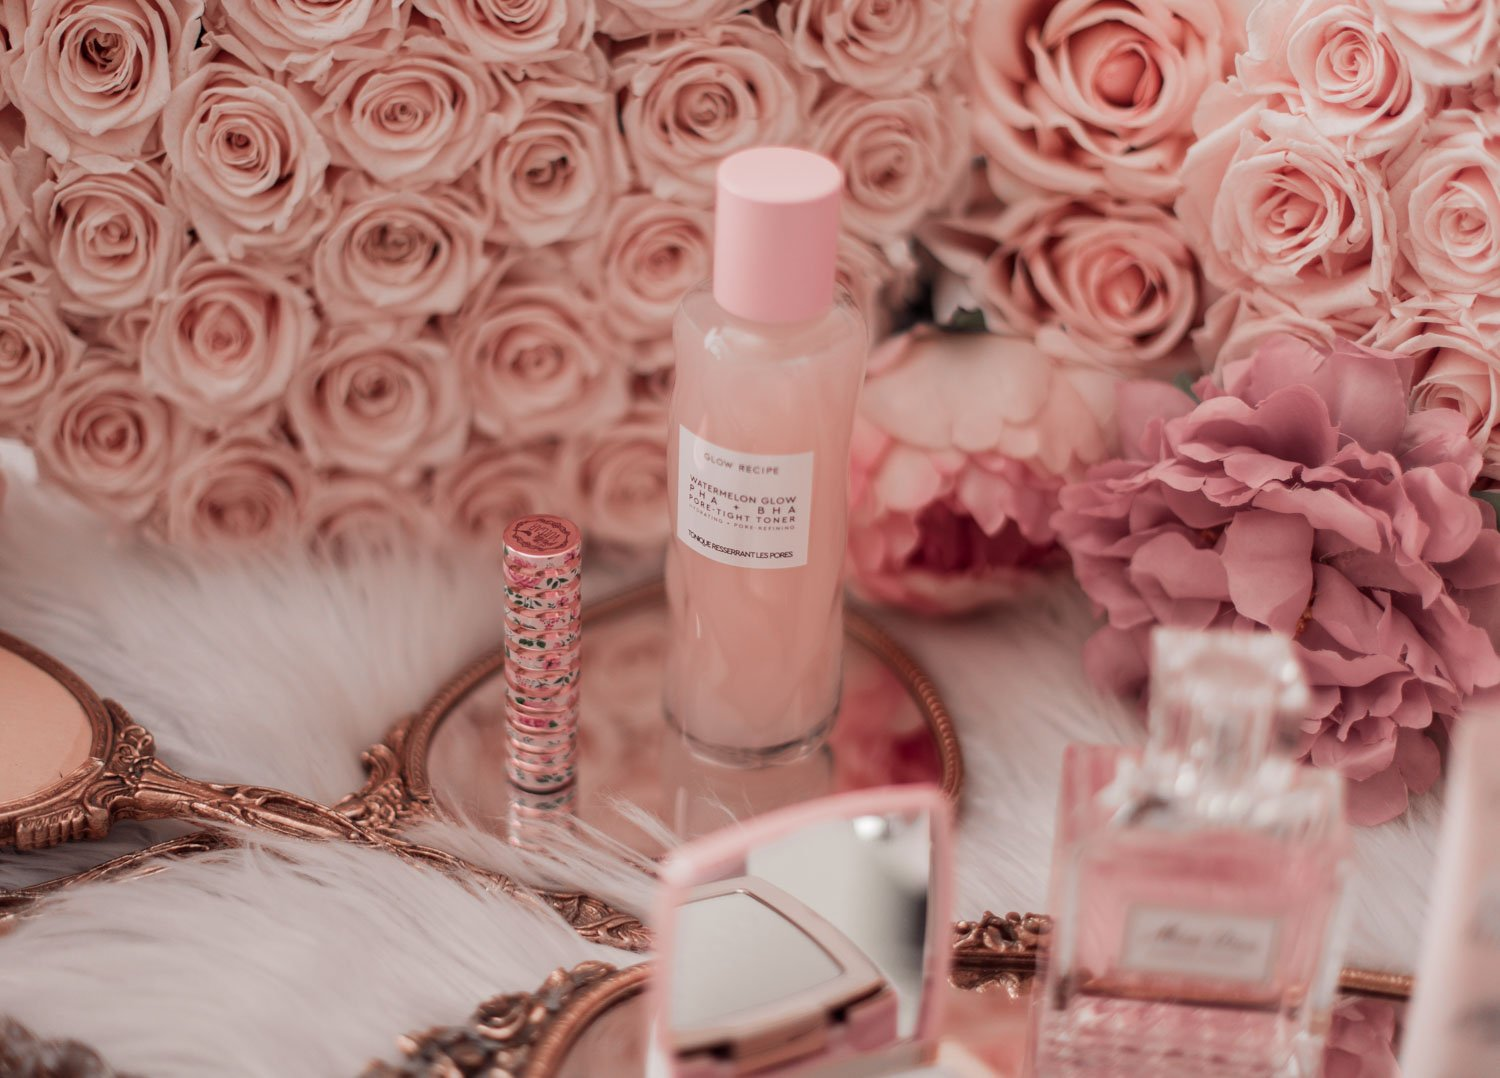 Elizabeth Hugen of Lizzie in Lace shares her must-have pink beauty products including the glow recipe watermelon toner